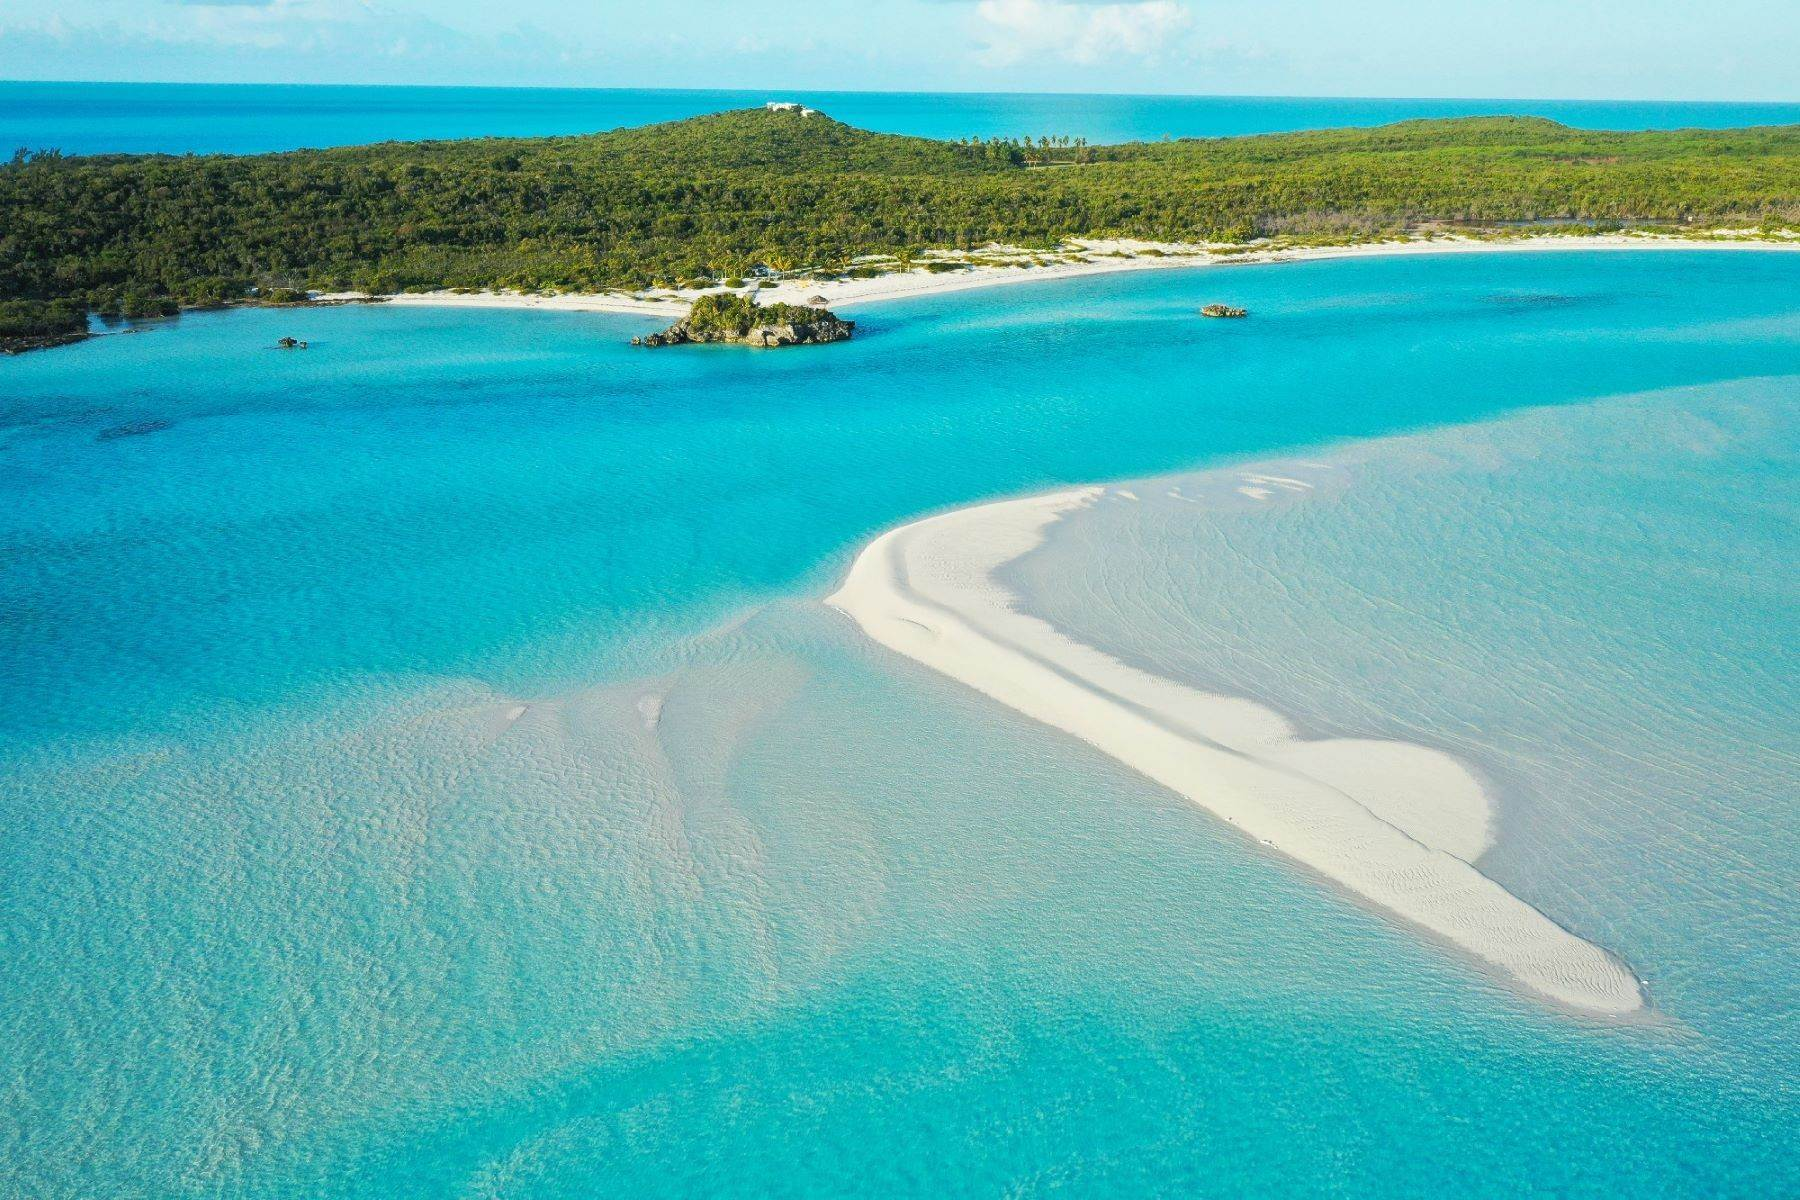 Private Islands للـ Sale في Exuma Cays, Exuma Bahamas